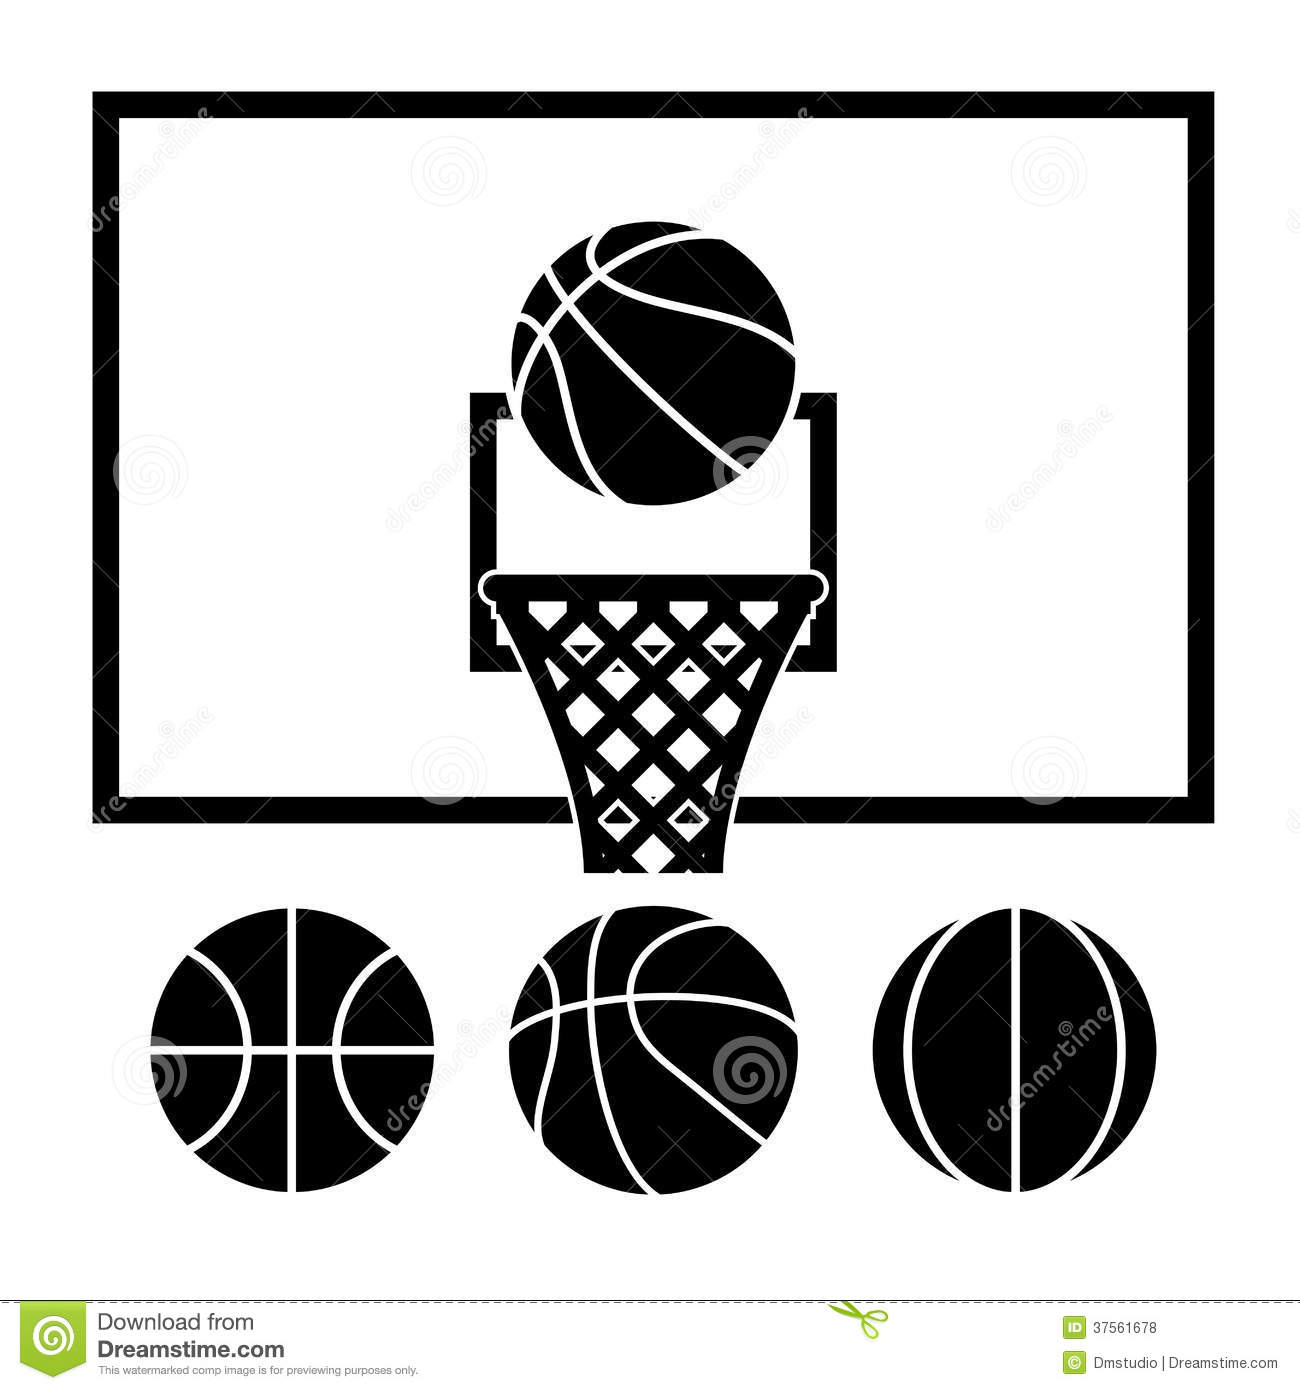 Black and White Basketball Net Vector